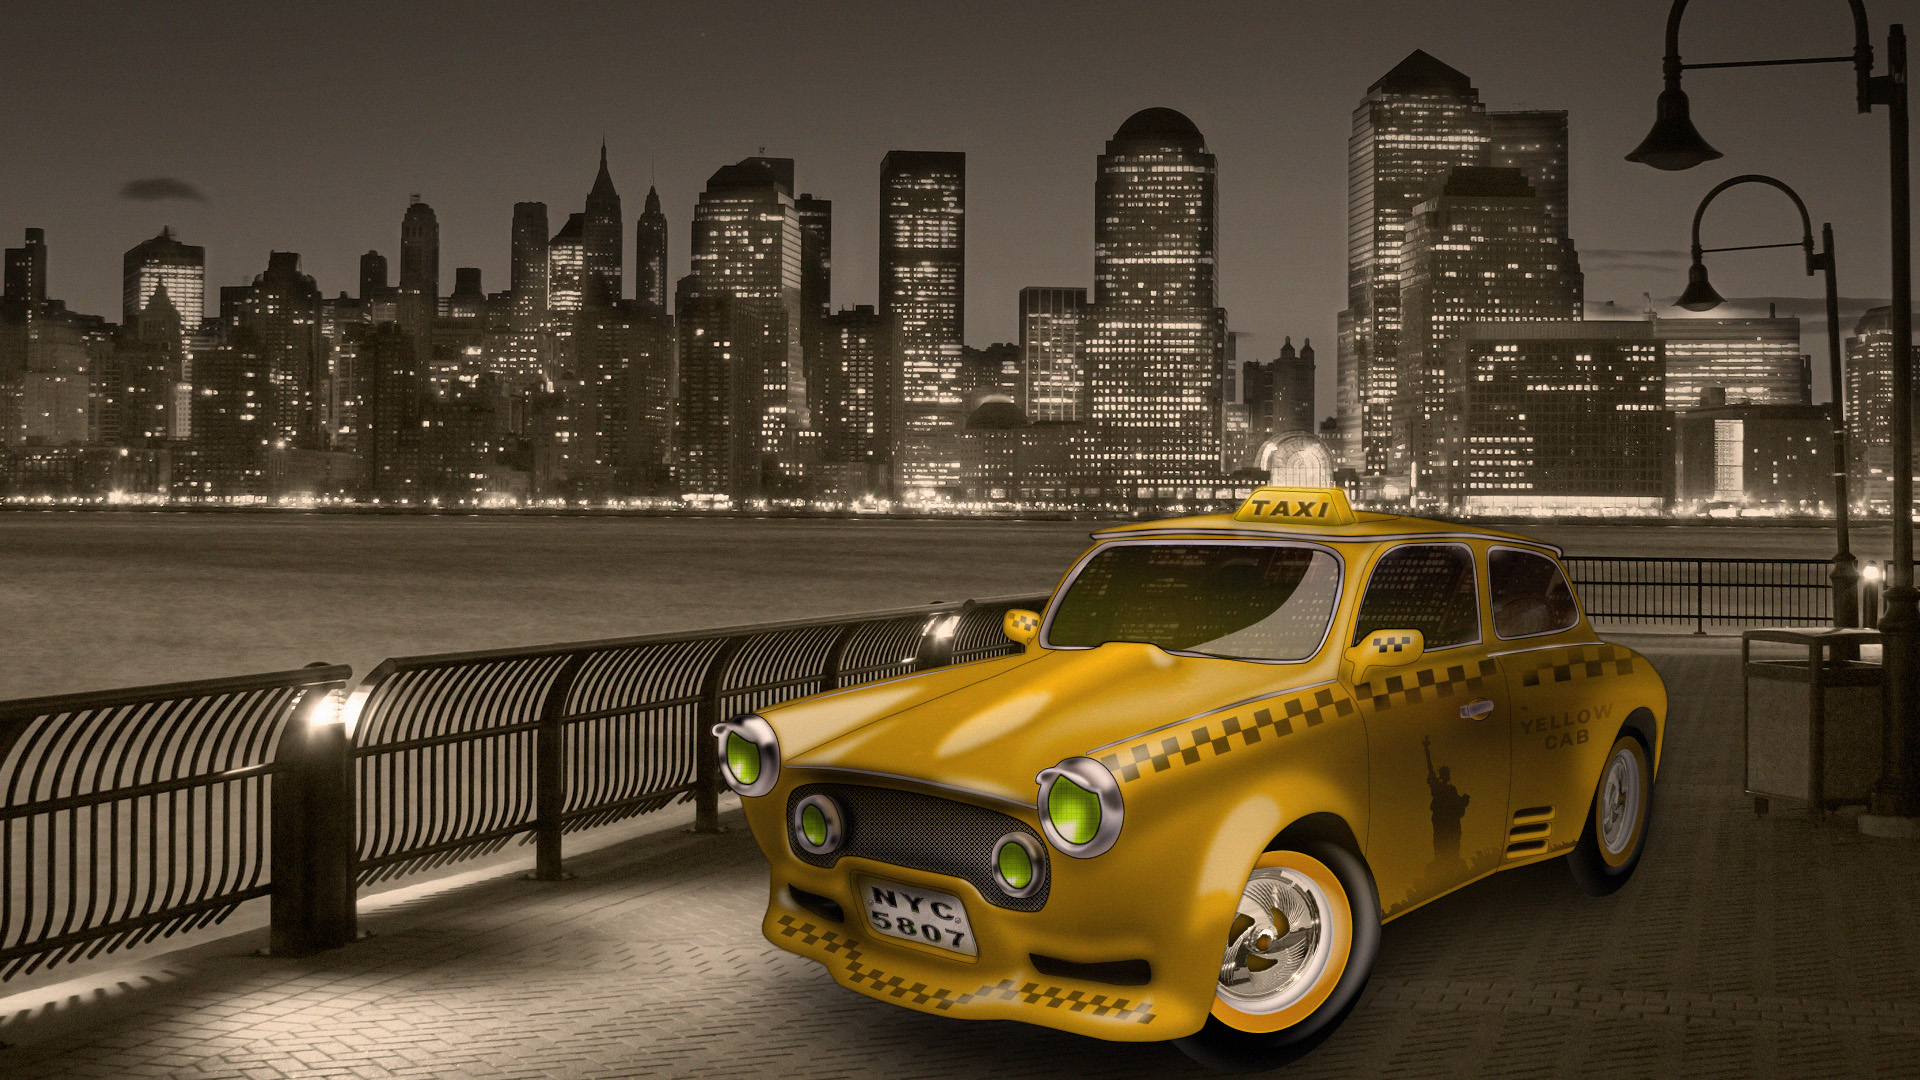 Taxi to Newjersey 1080p